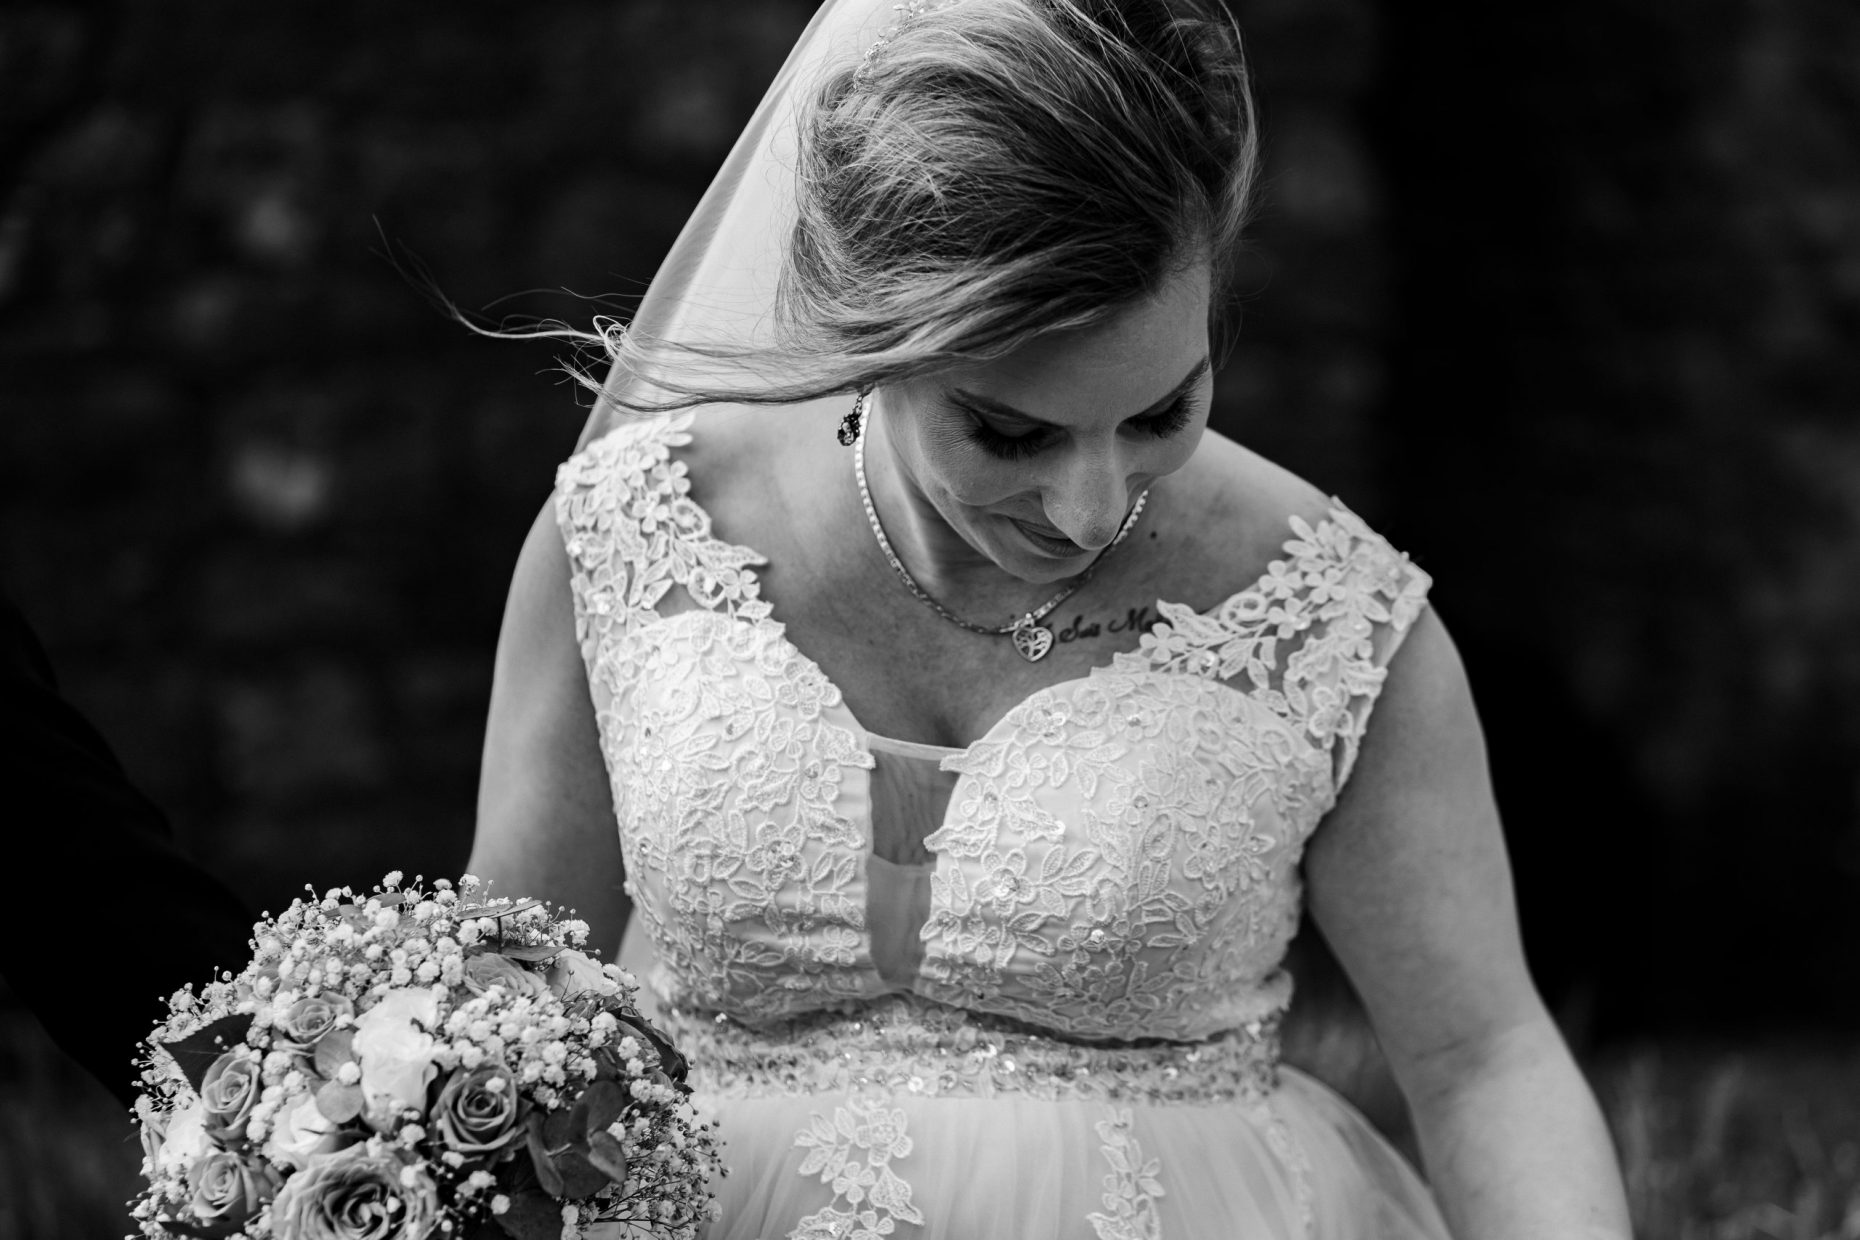 An artistic photo of a bride in a documentary style